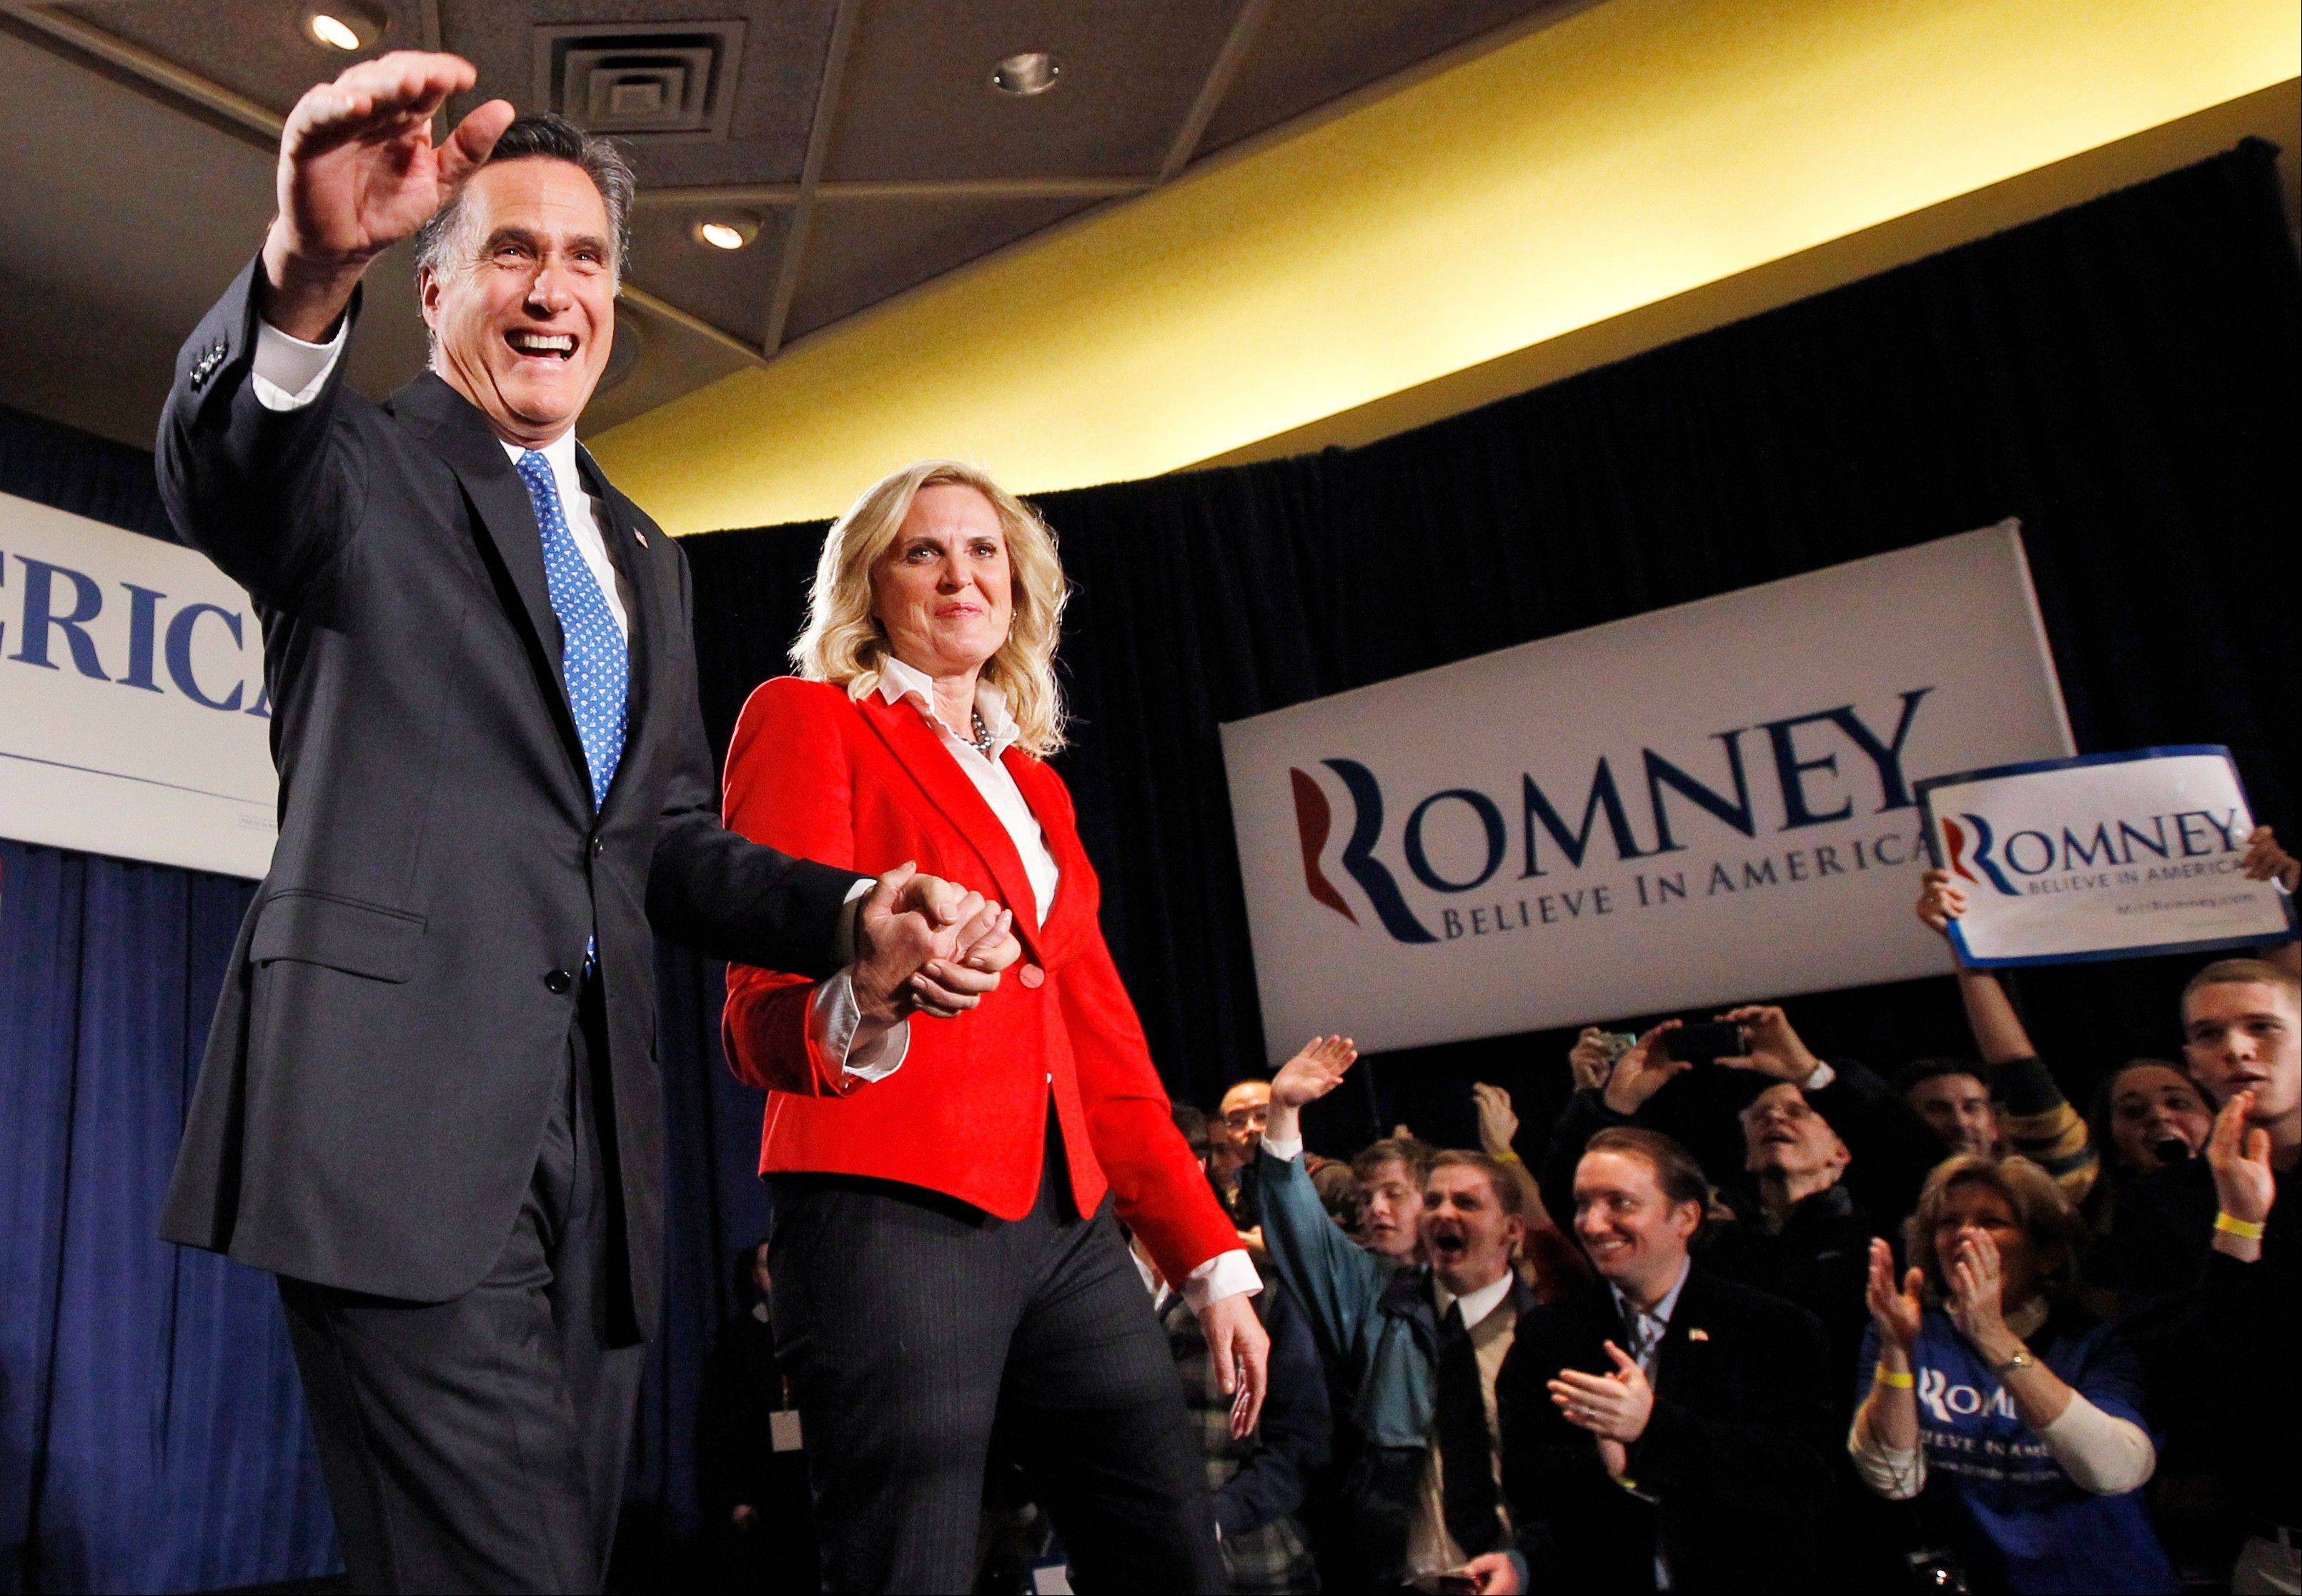 Republican presidential candidate, former Massachusetts Gov. Mitt Romney, takes the stage with his wife Ann at his caucus night rally in Des Moines, Iowa, Tuesday, Jan. 3, 2012.